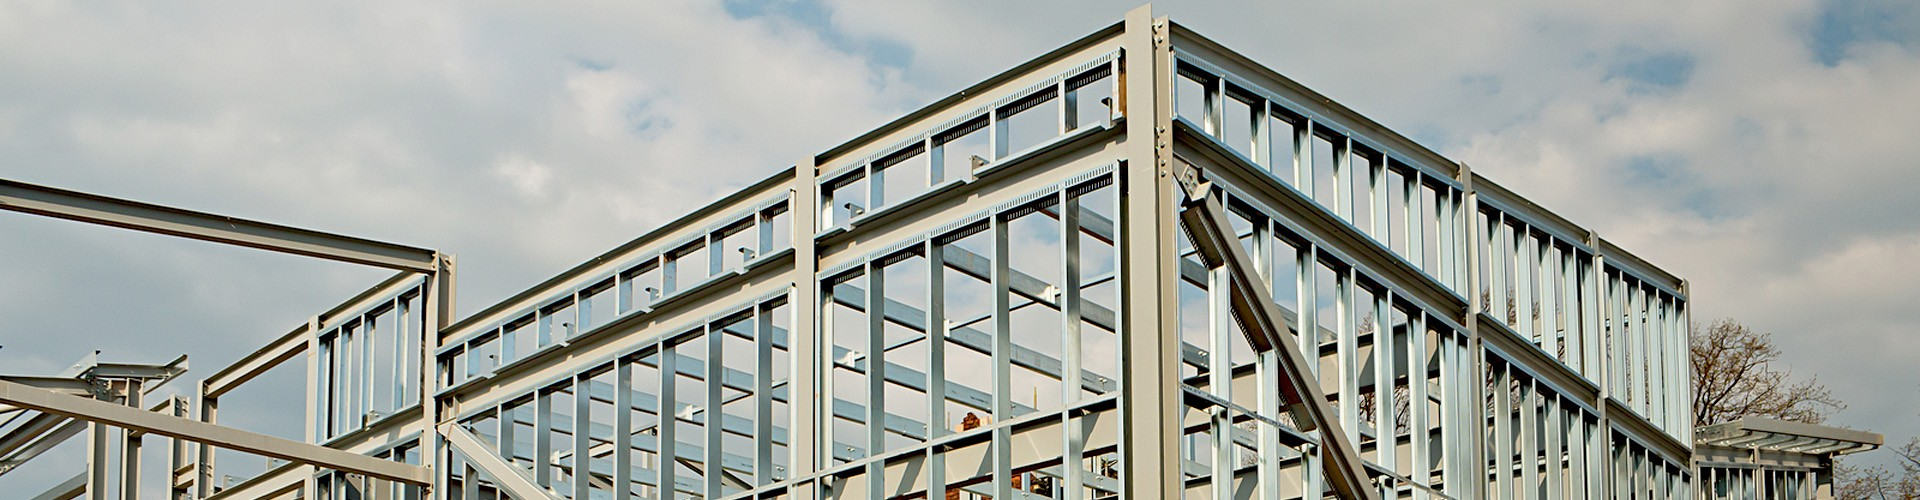 bigstock-Steel-Framed-Building-65615464